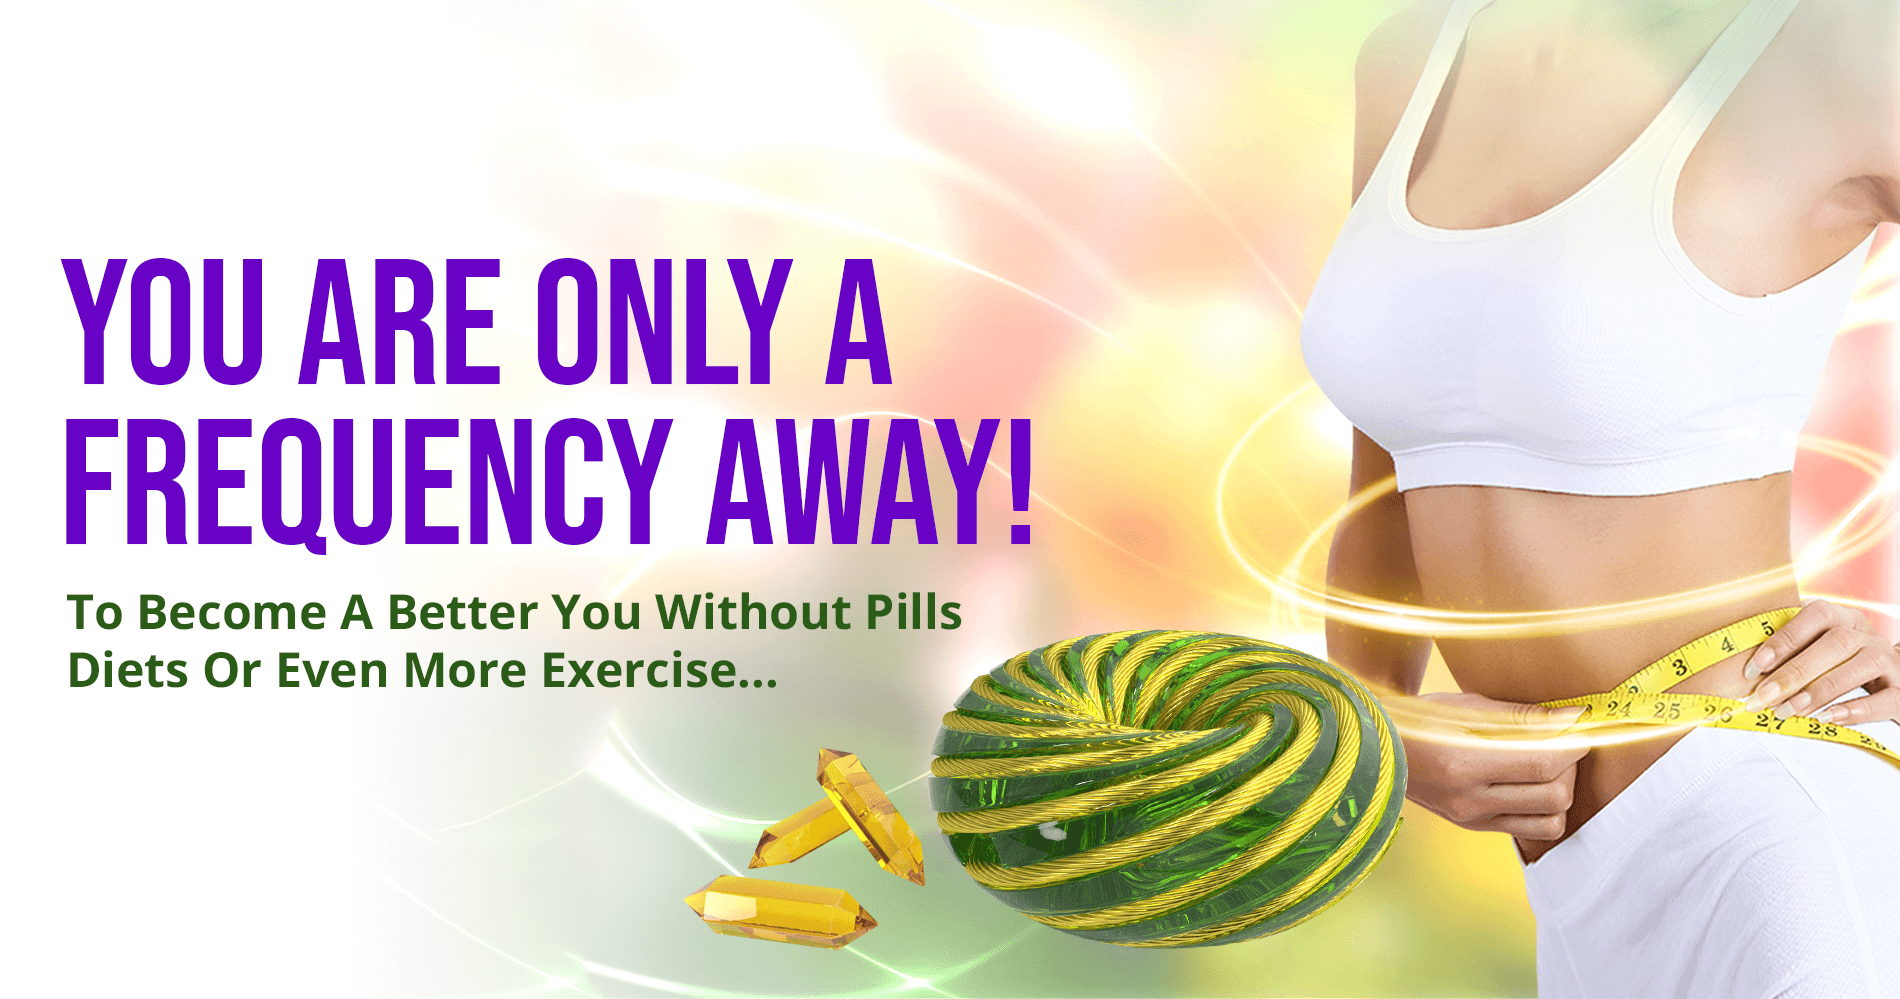 frequency to become a better you without any pills or diets